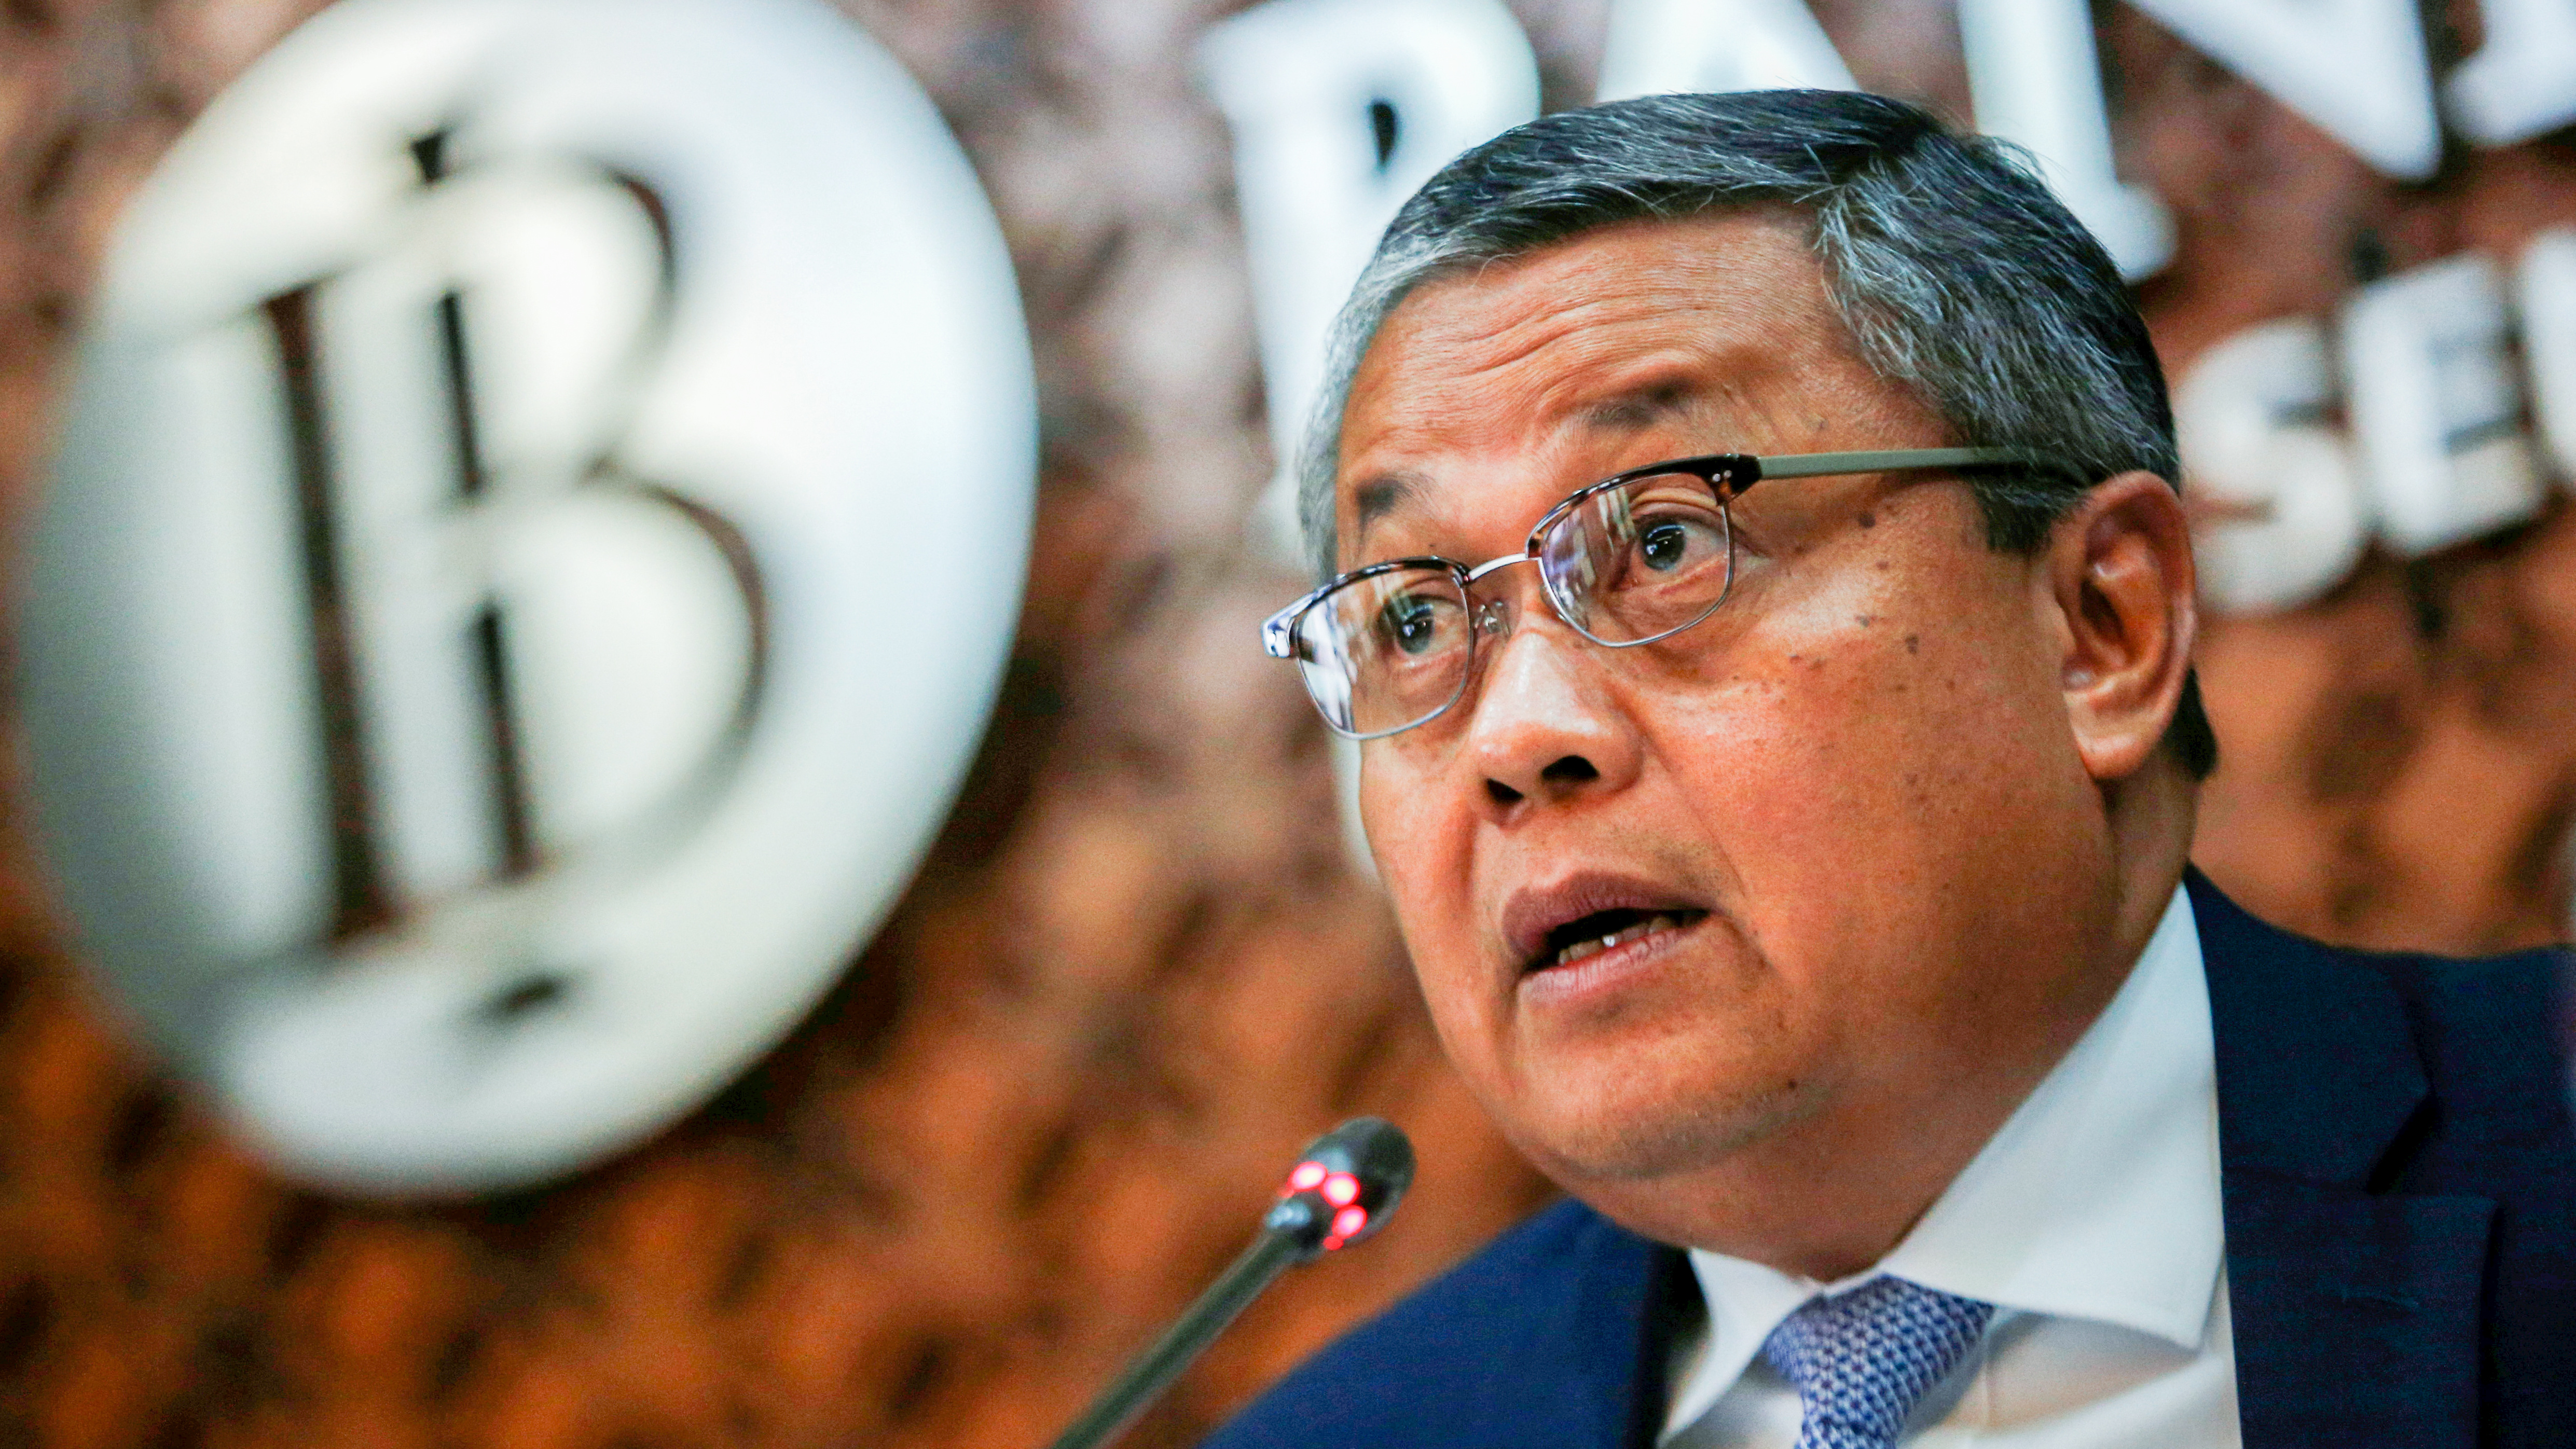 Indonesia central bank anticipating risk of rising inflation in 2022: Governor